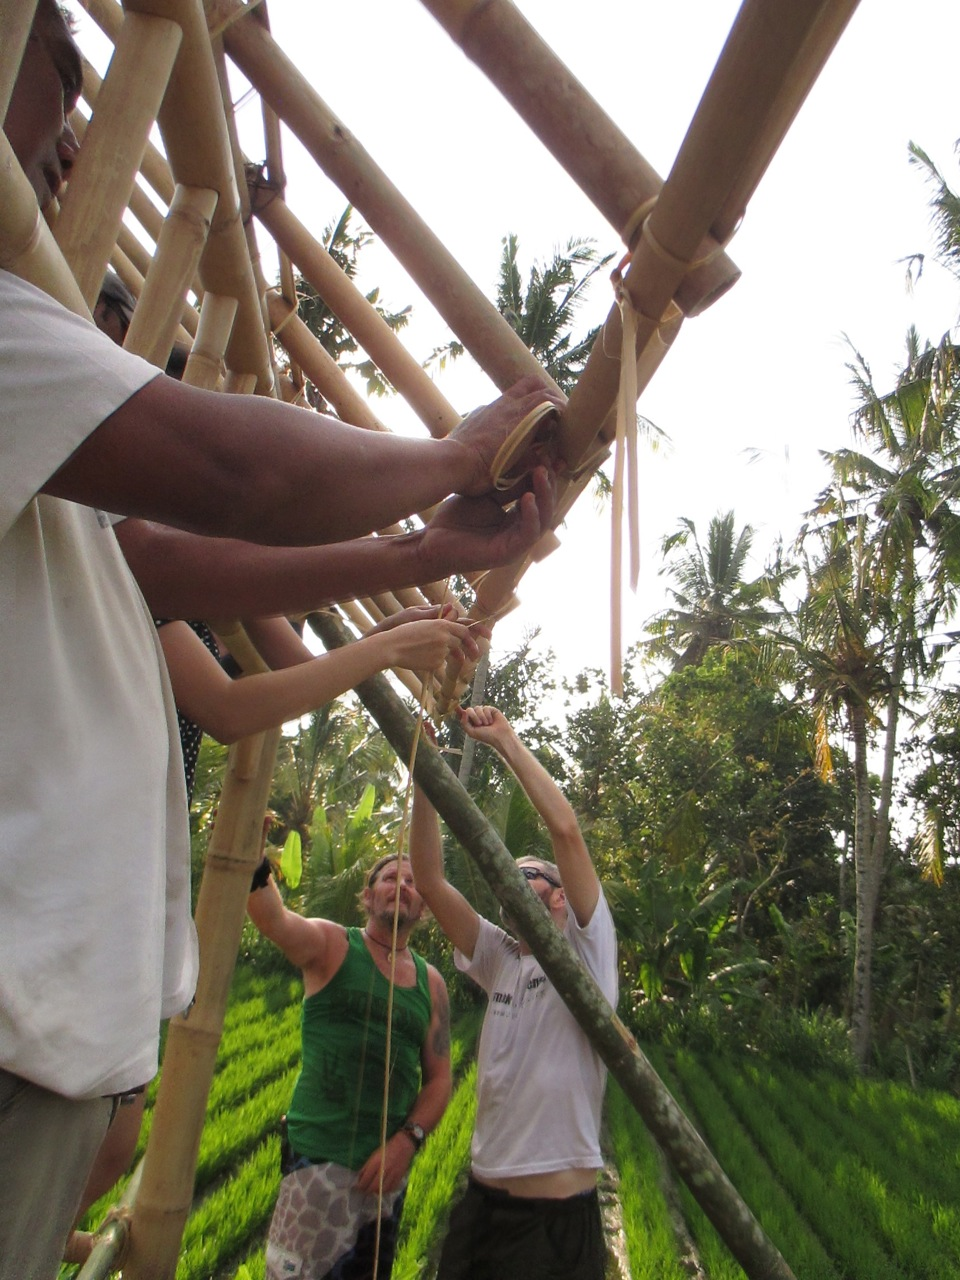 Ties are made from bamboo fibers